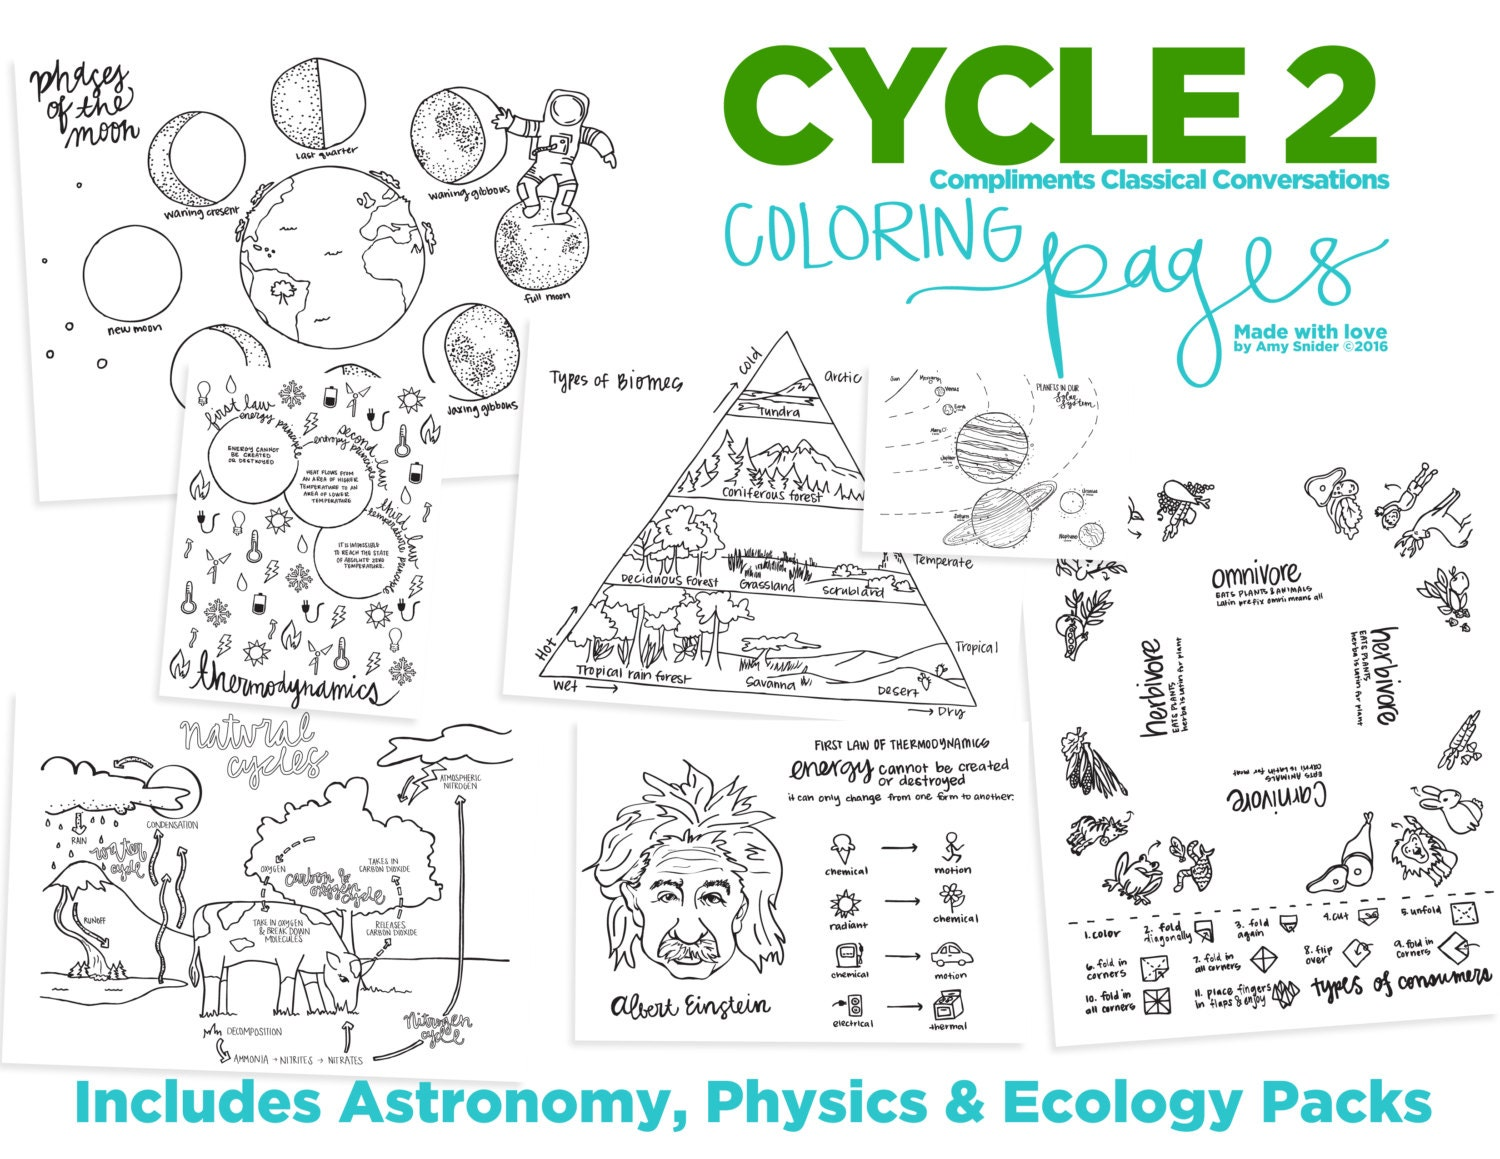 science coloring pages classical conversations cycle 2